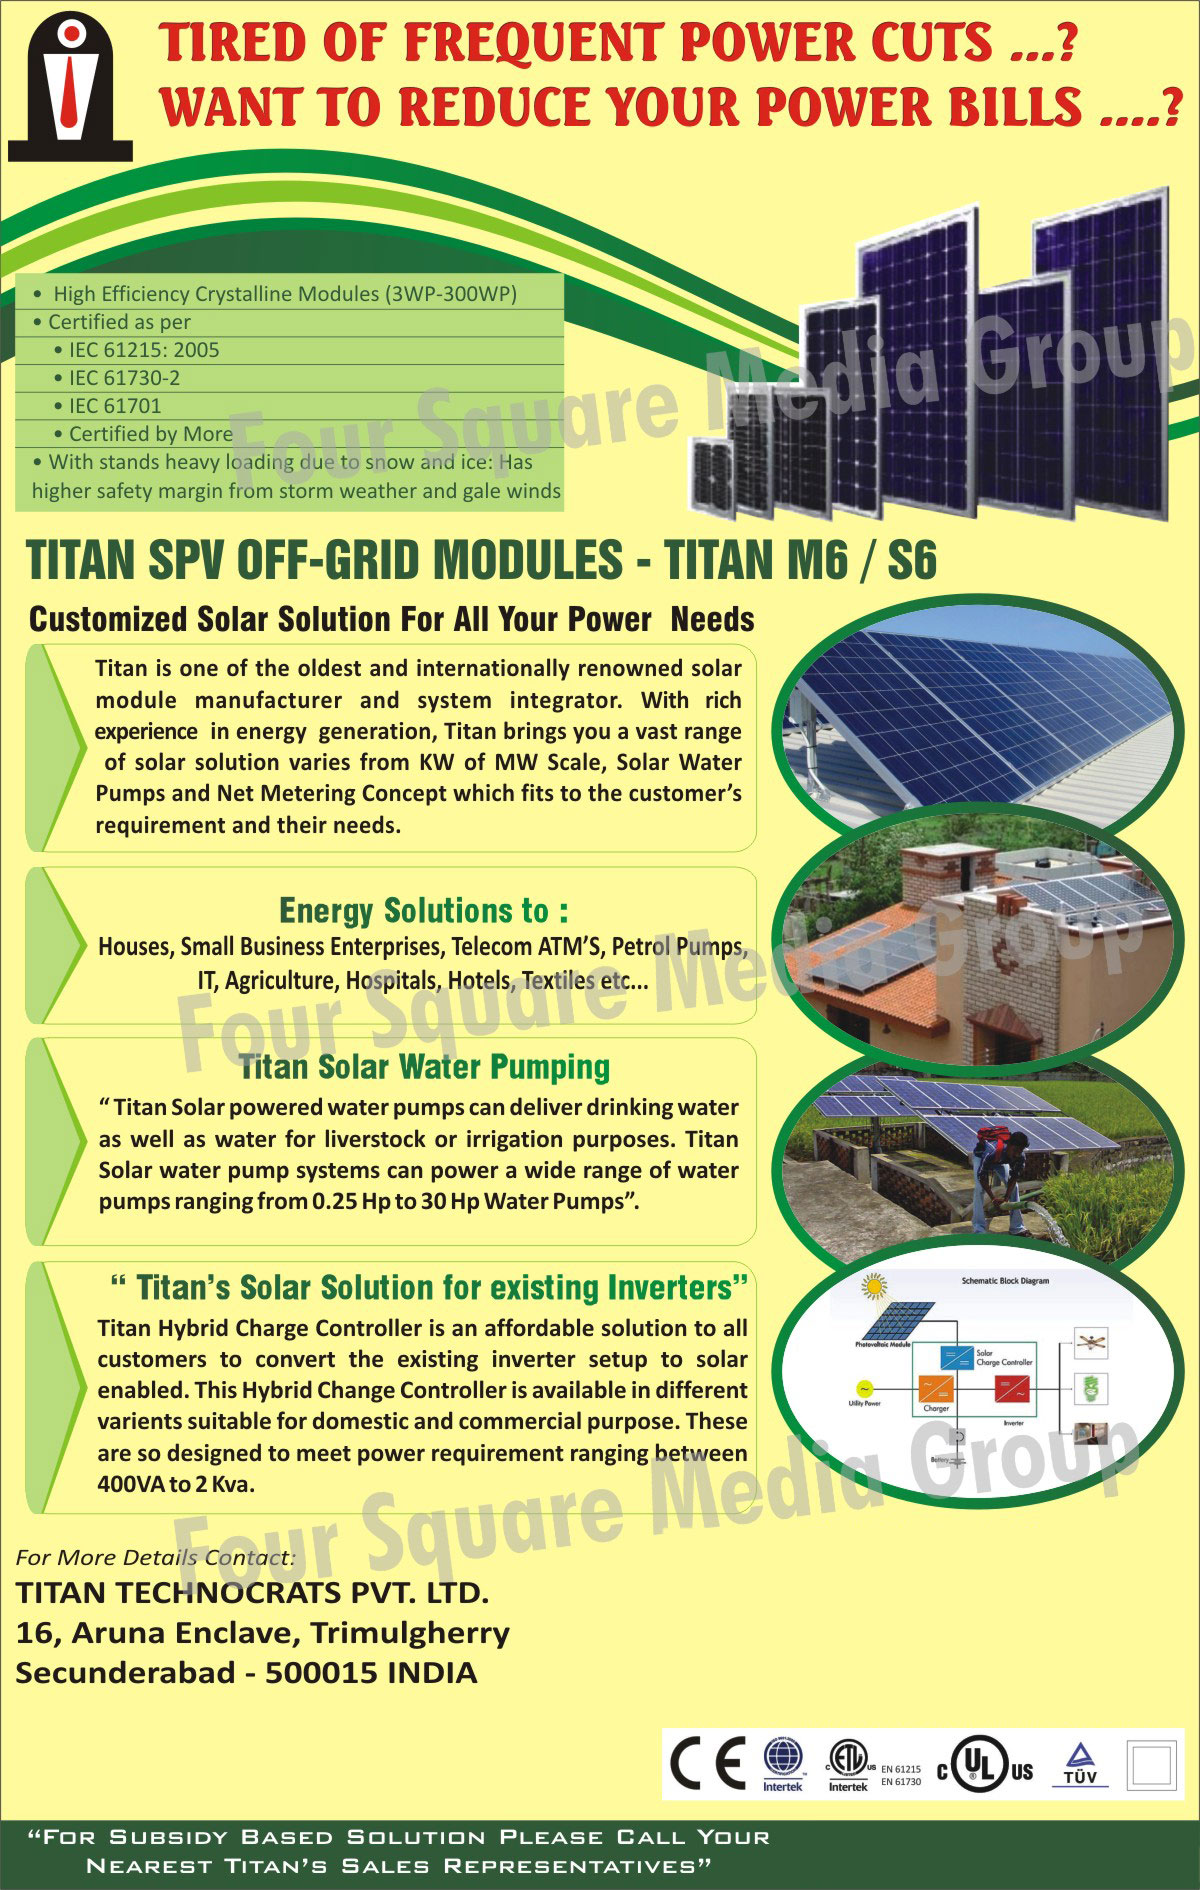 Crystalline Modules, SPV Off Grid Modules, Solar Water Pumps, Hybrid Charge Controller, convert Existing Inverter into Solar Inverter,Solar Products, Panels, Inverters, Water Pump, Street Lights, Lantern